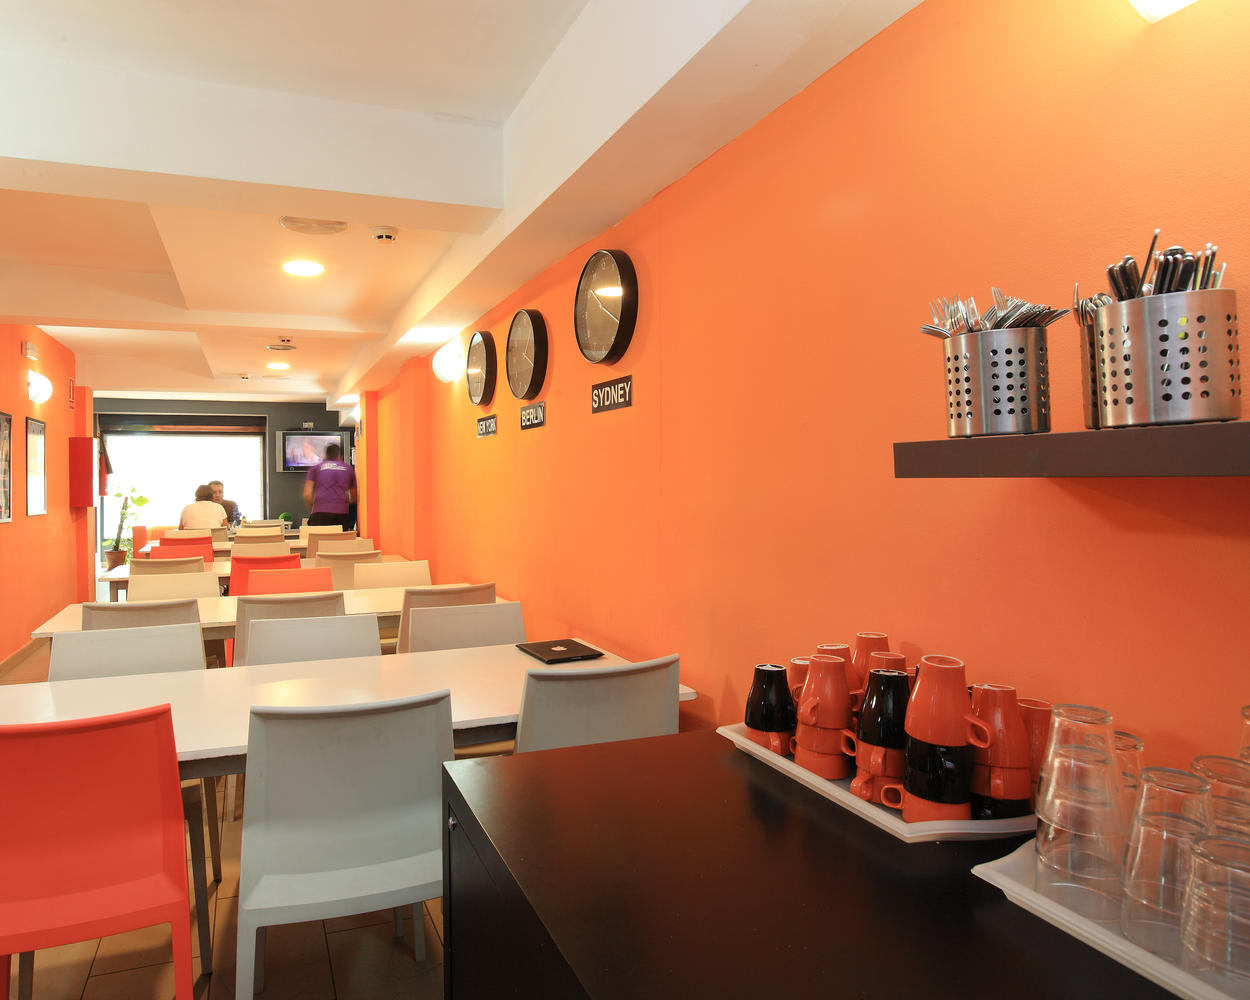 Dining area / zona comedor